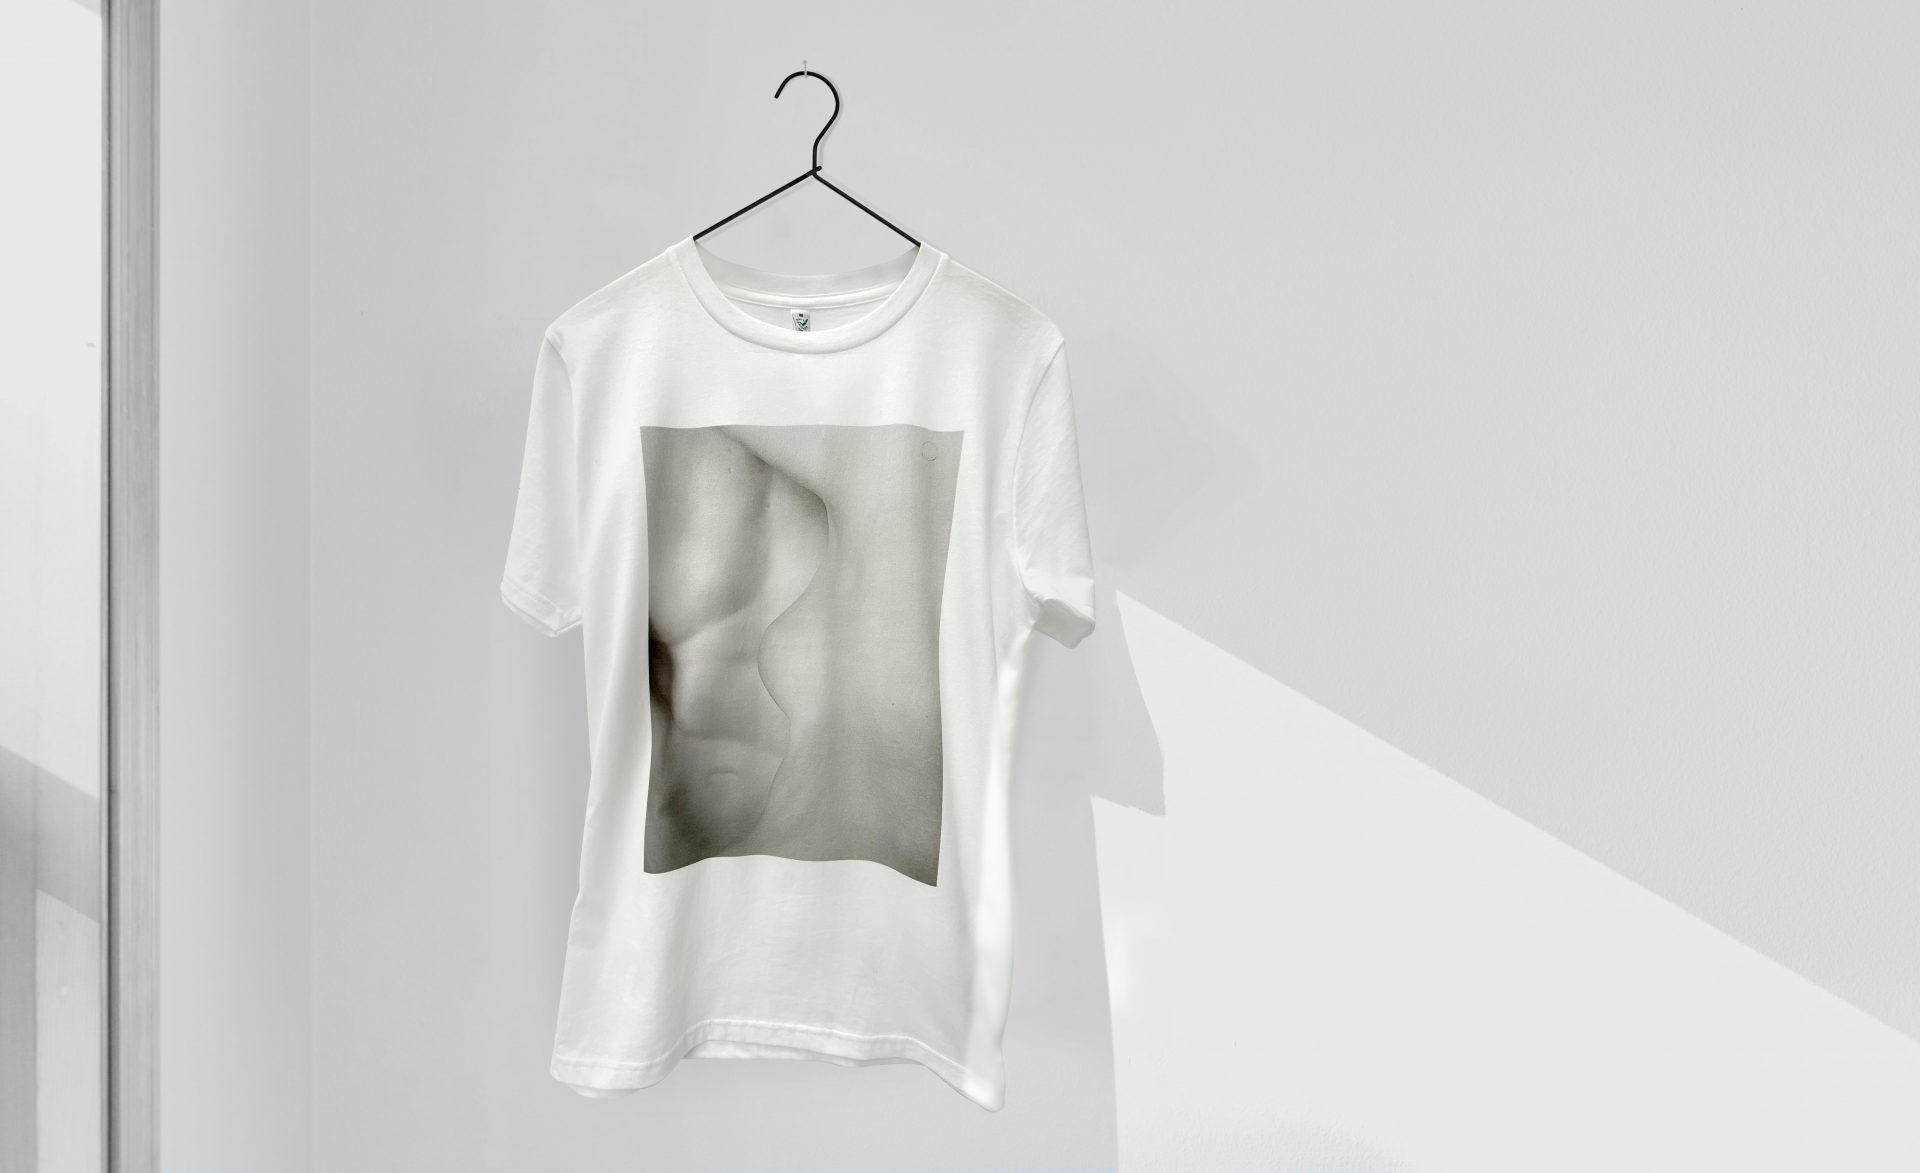 DTG printed t-shirt merchandise by Paul Bristow, Organic t-shirt for Tate